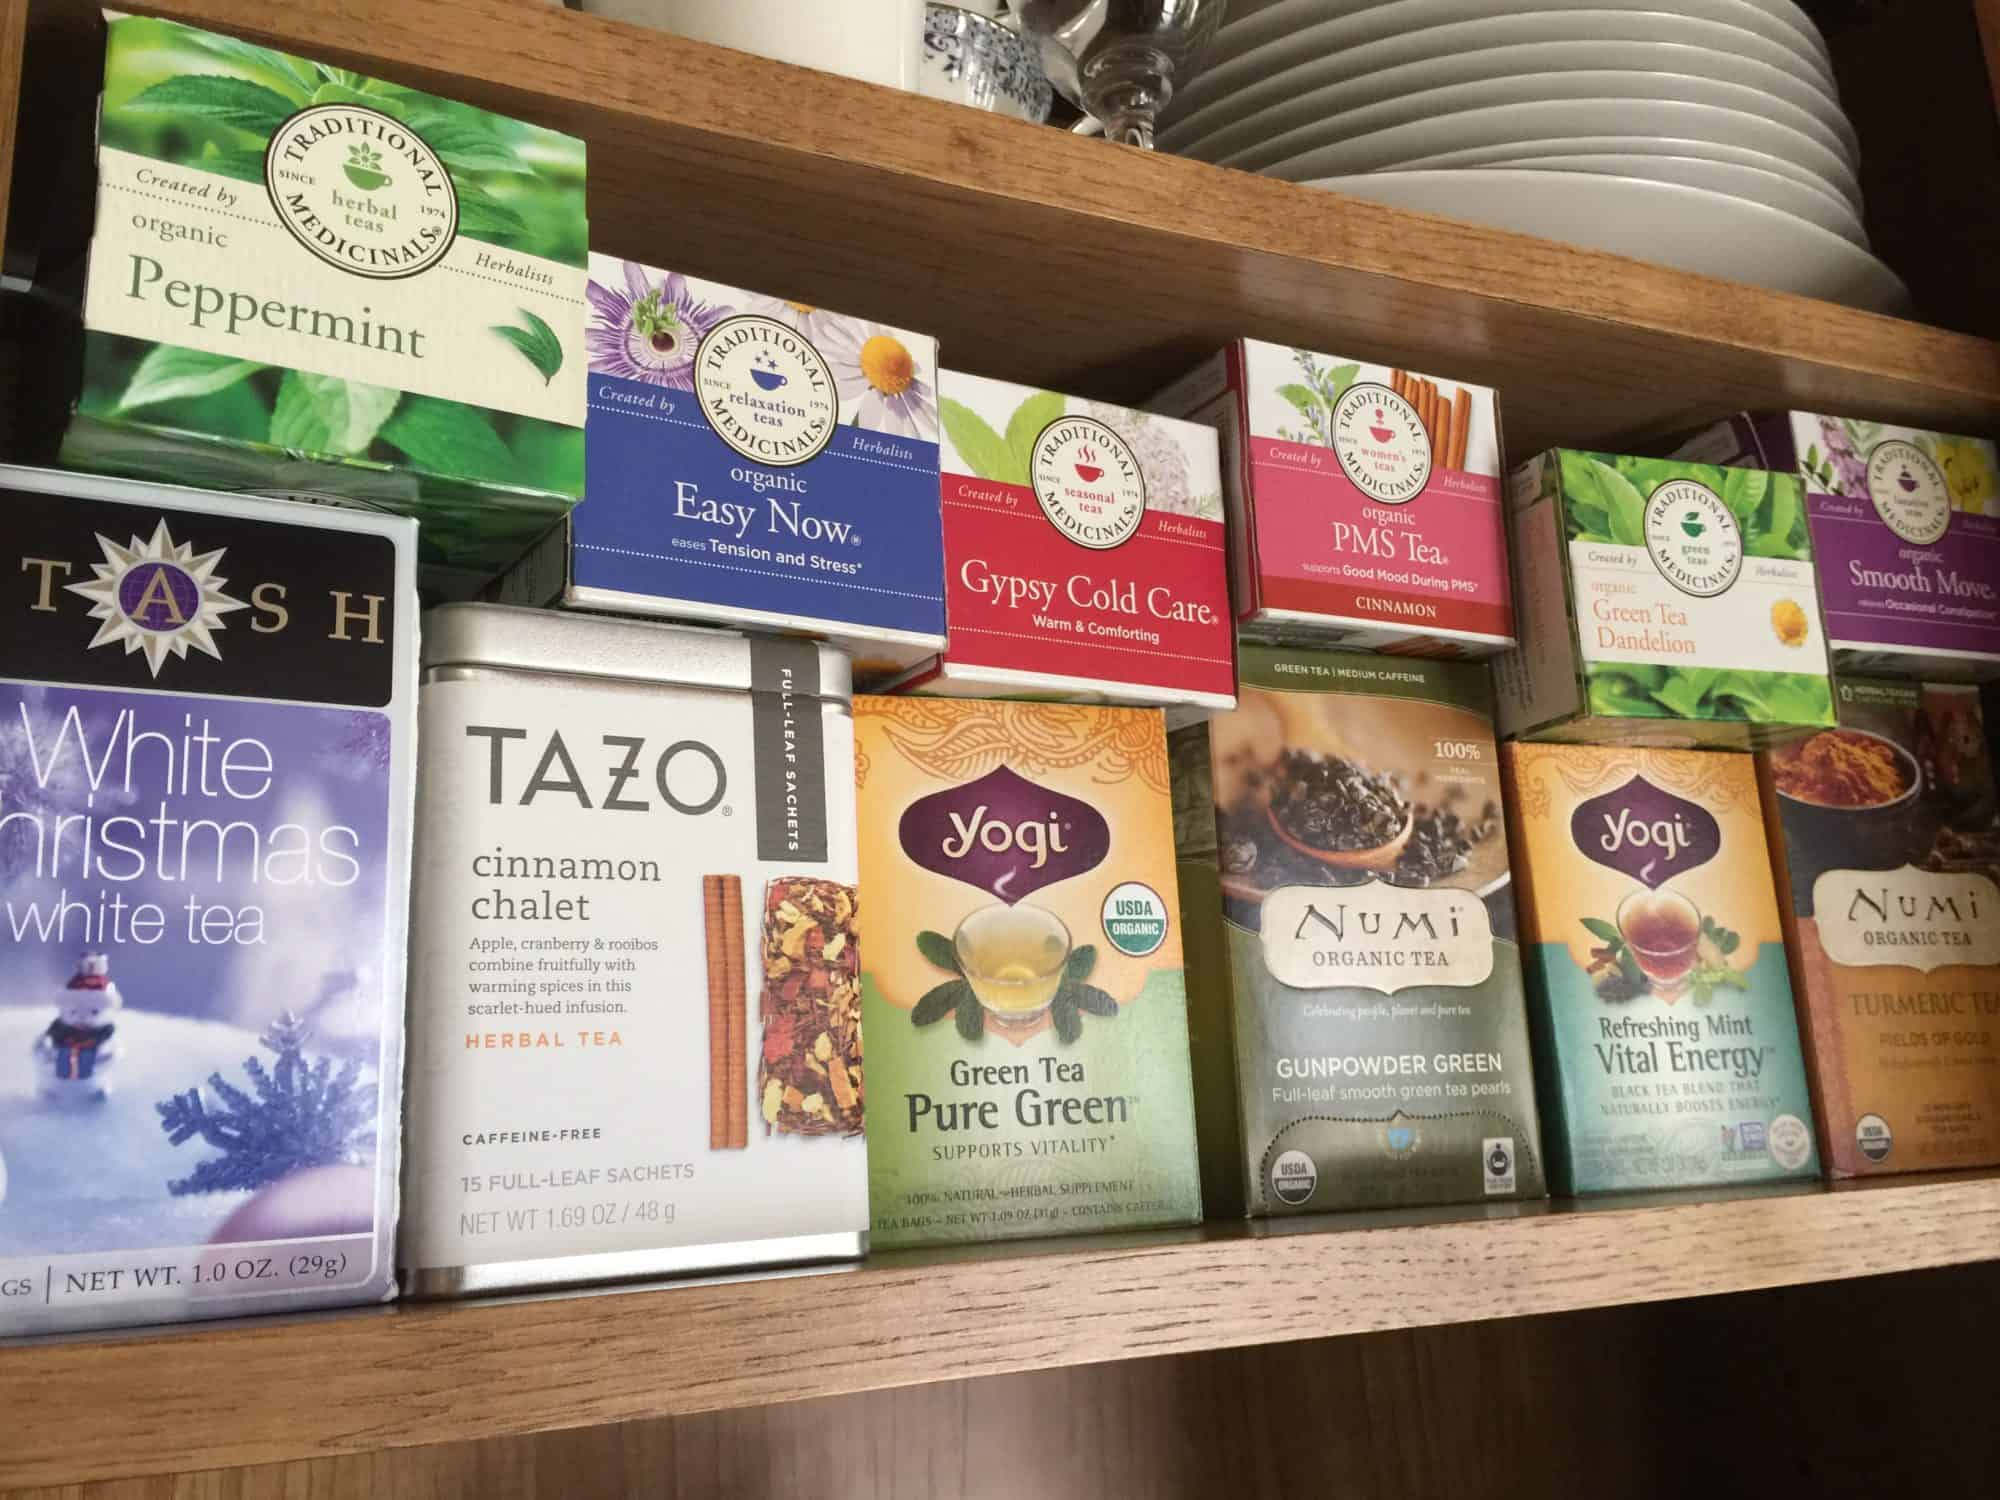 Chemicals and Pesticides Found In Popular Tea Brands & Tea Bags, Celestial Seasonings, Teavana, Tazo, Trader Joe's, Twinings of London, Lipton, Bigelow, Red Rose, teas in my kitchen